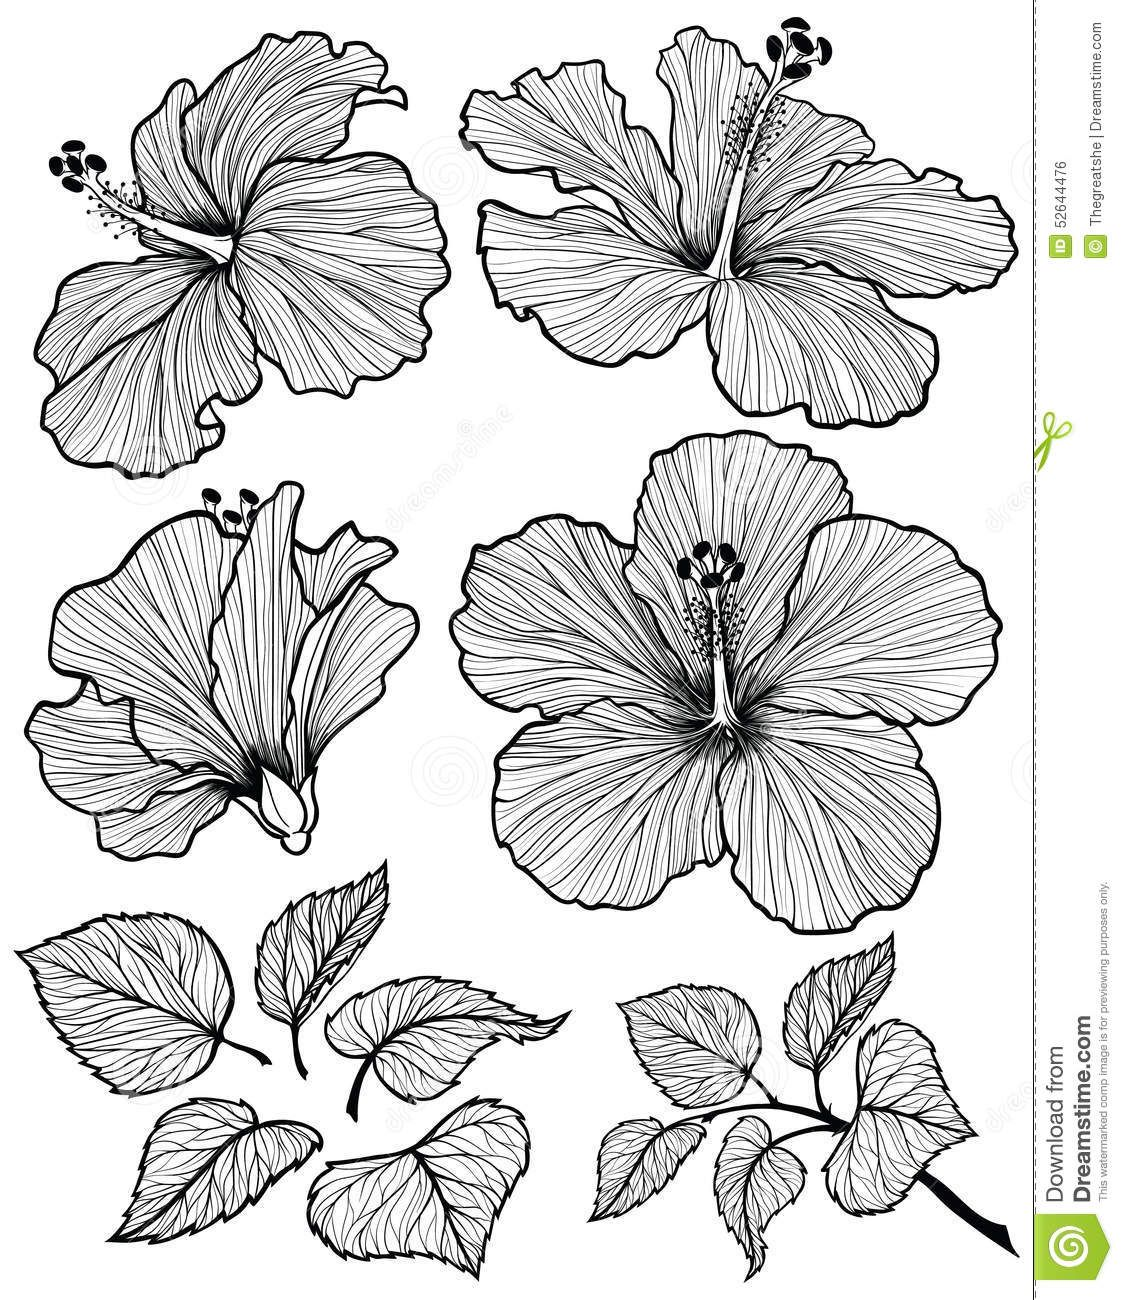 Hibiscus Flower Set Flower Graphic Flower Drawing Flower Sketches